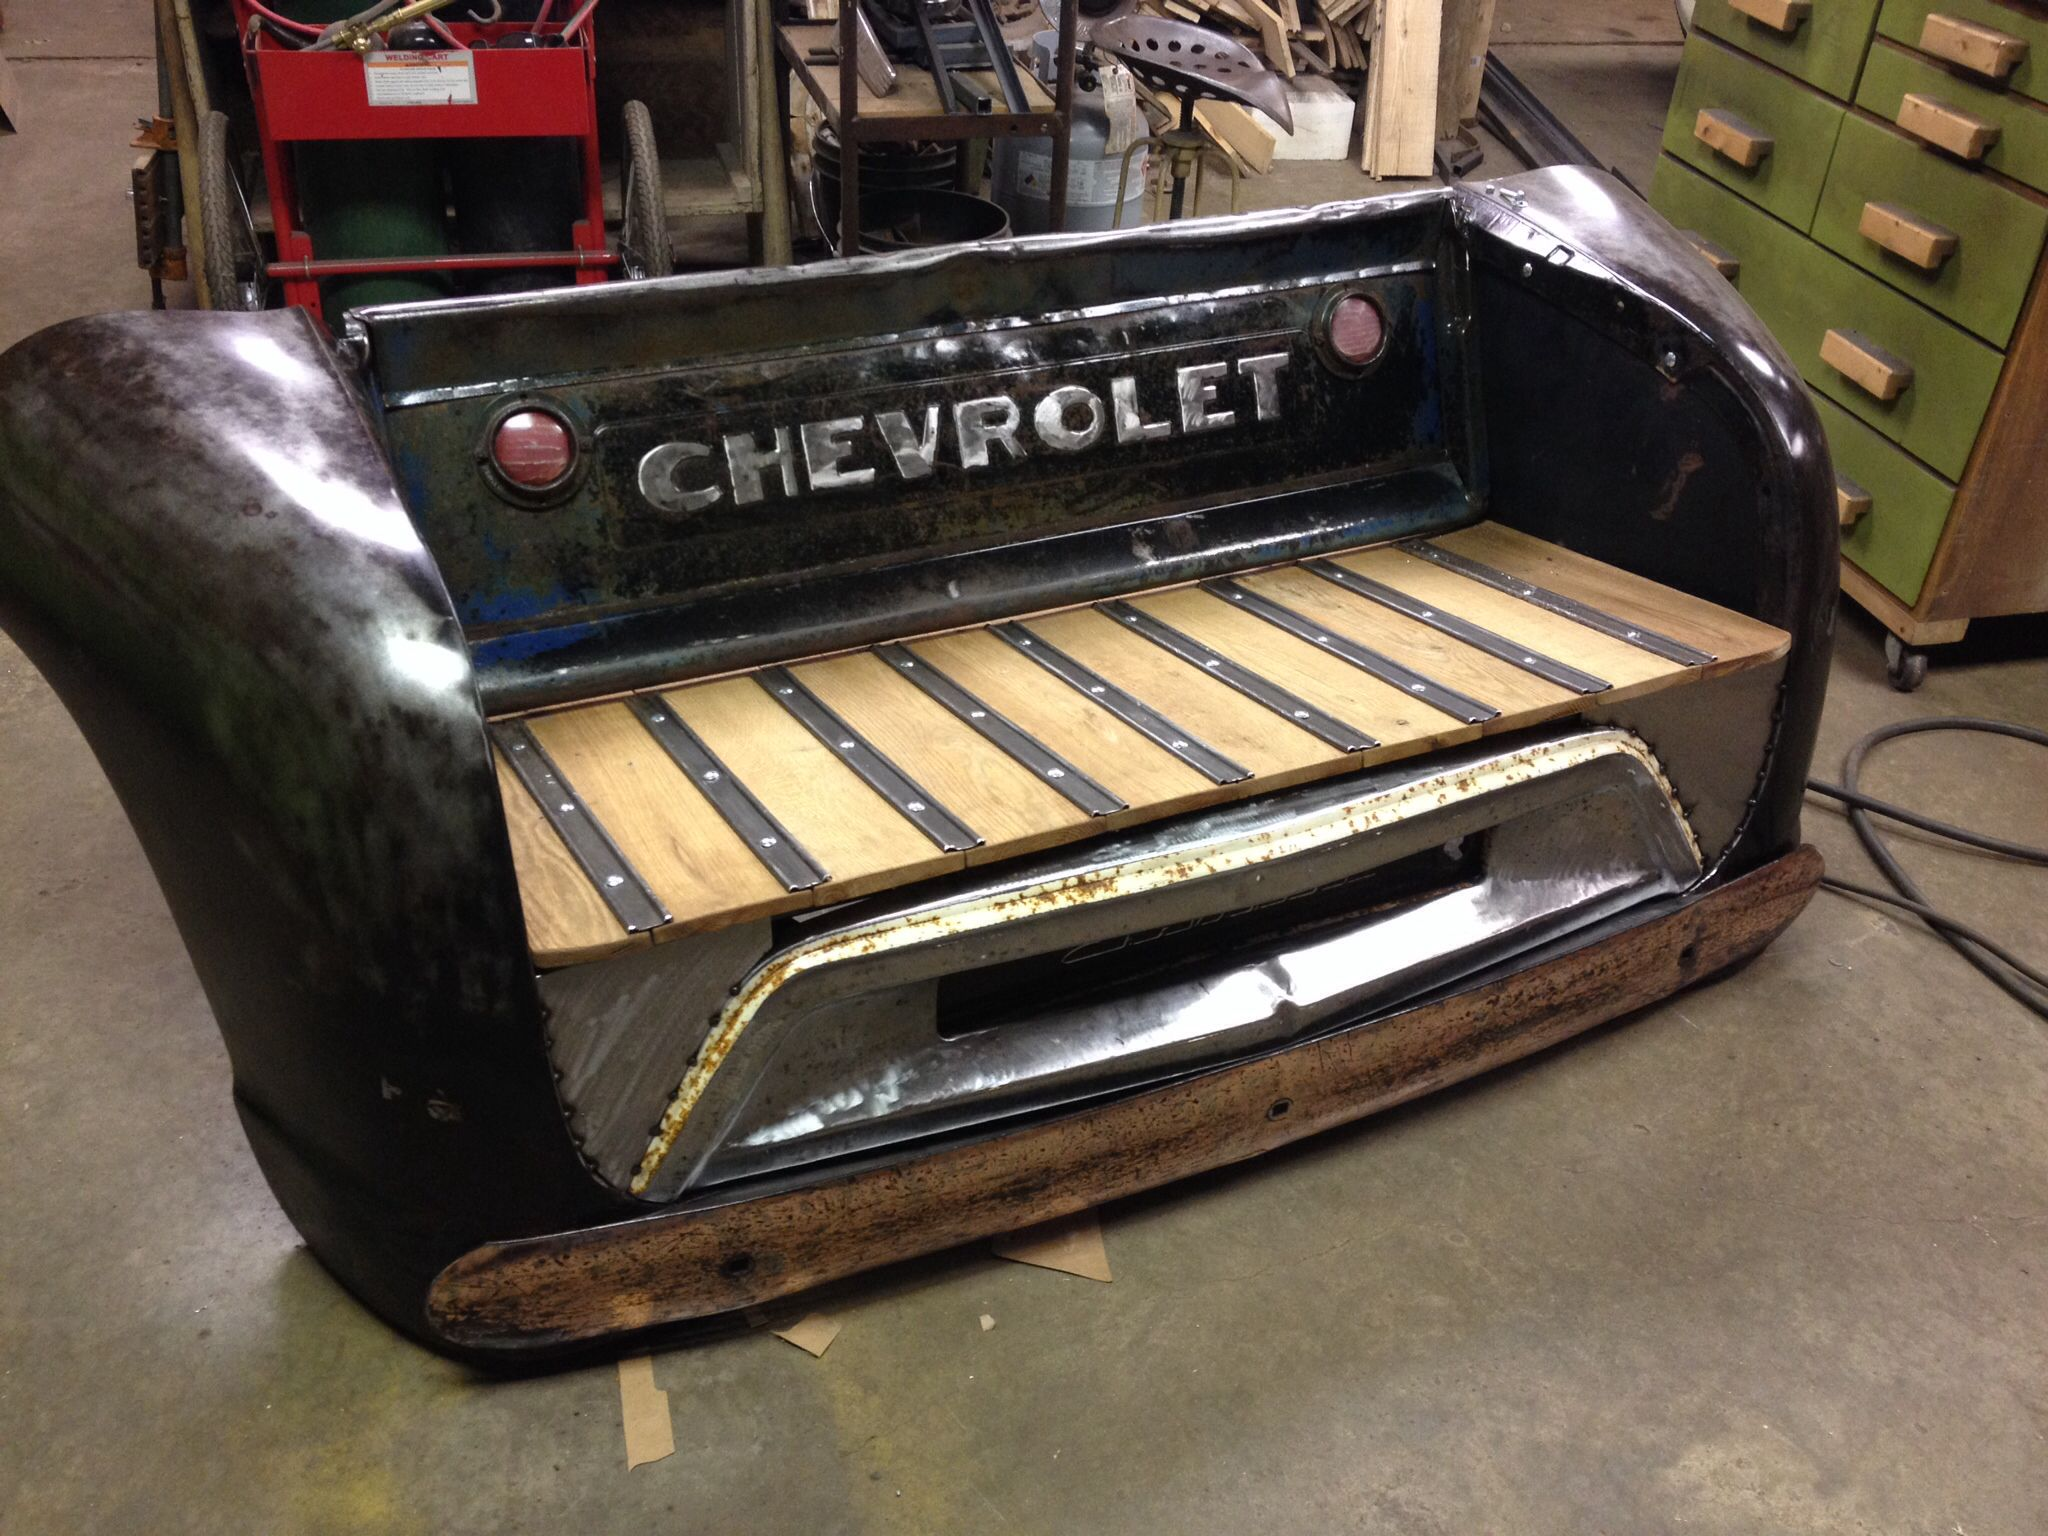 Truck Parts For Sale >> Custom Made Bench From Vintage Truck Parts For Sale Contact Kyle